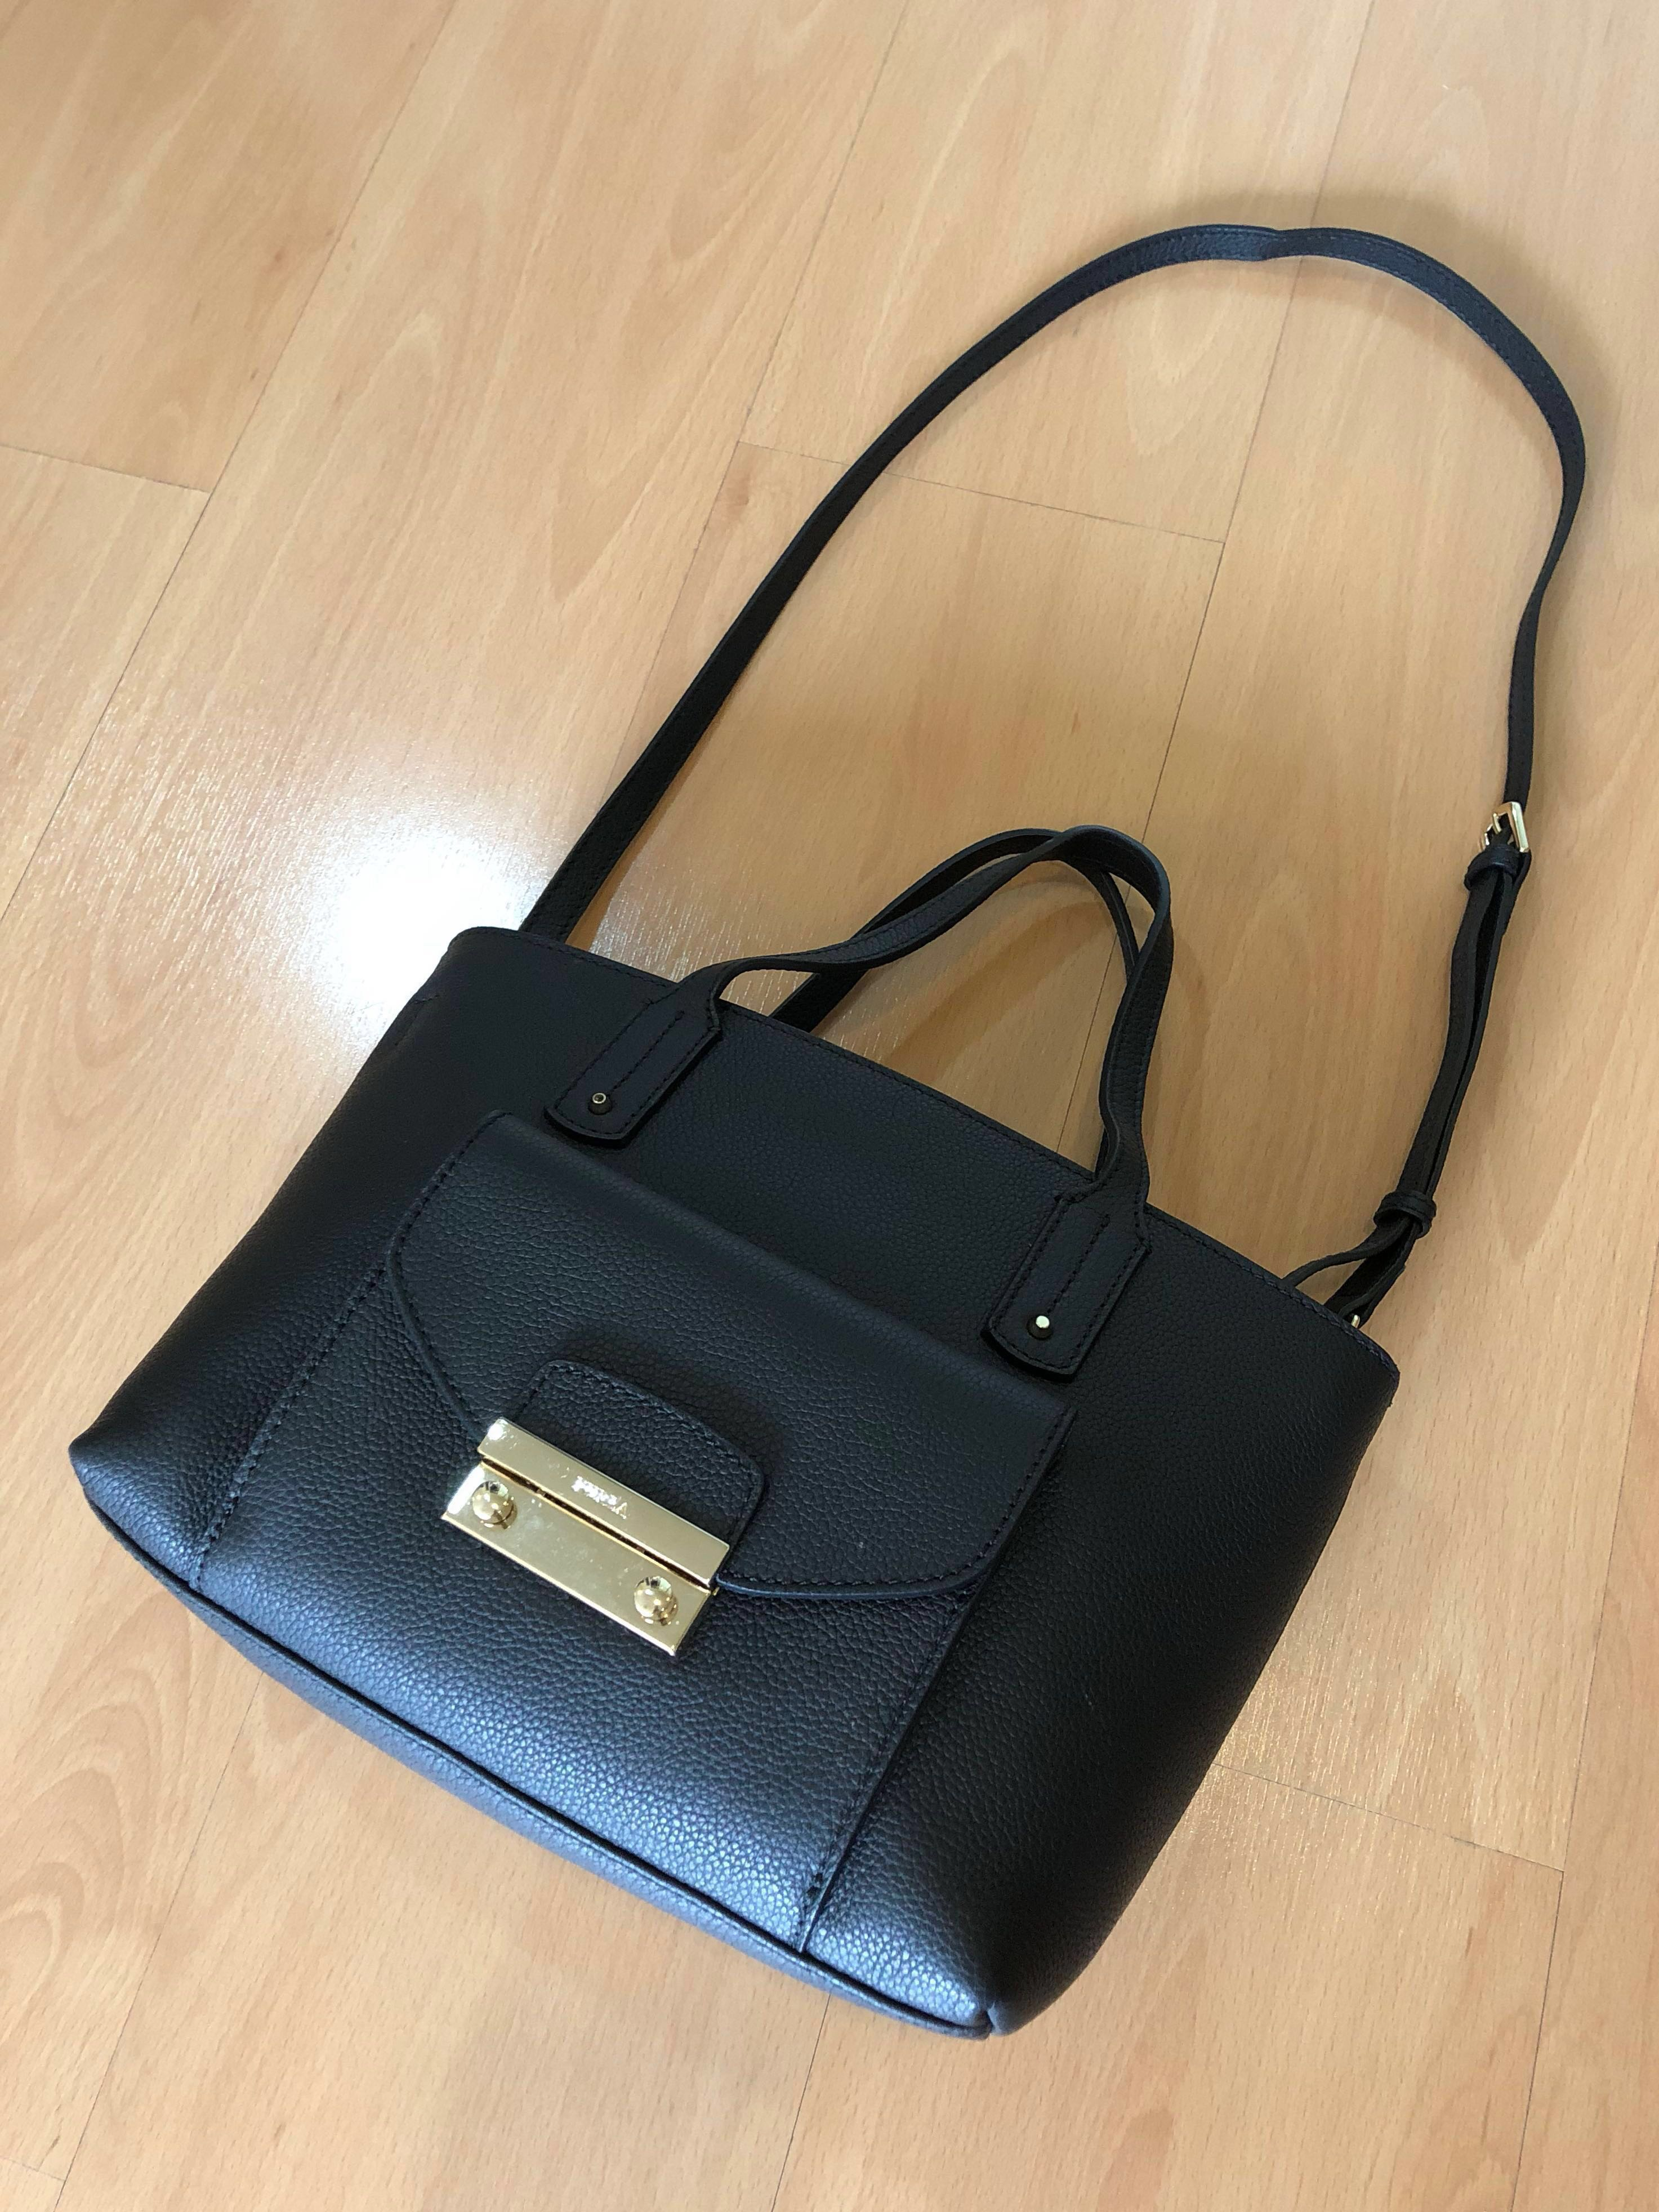 f089e536504 Reduced💥Authentic Furla leather tote Black , Women s Fashion, Bags    Wallets on Carousell